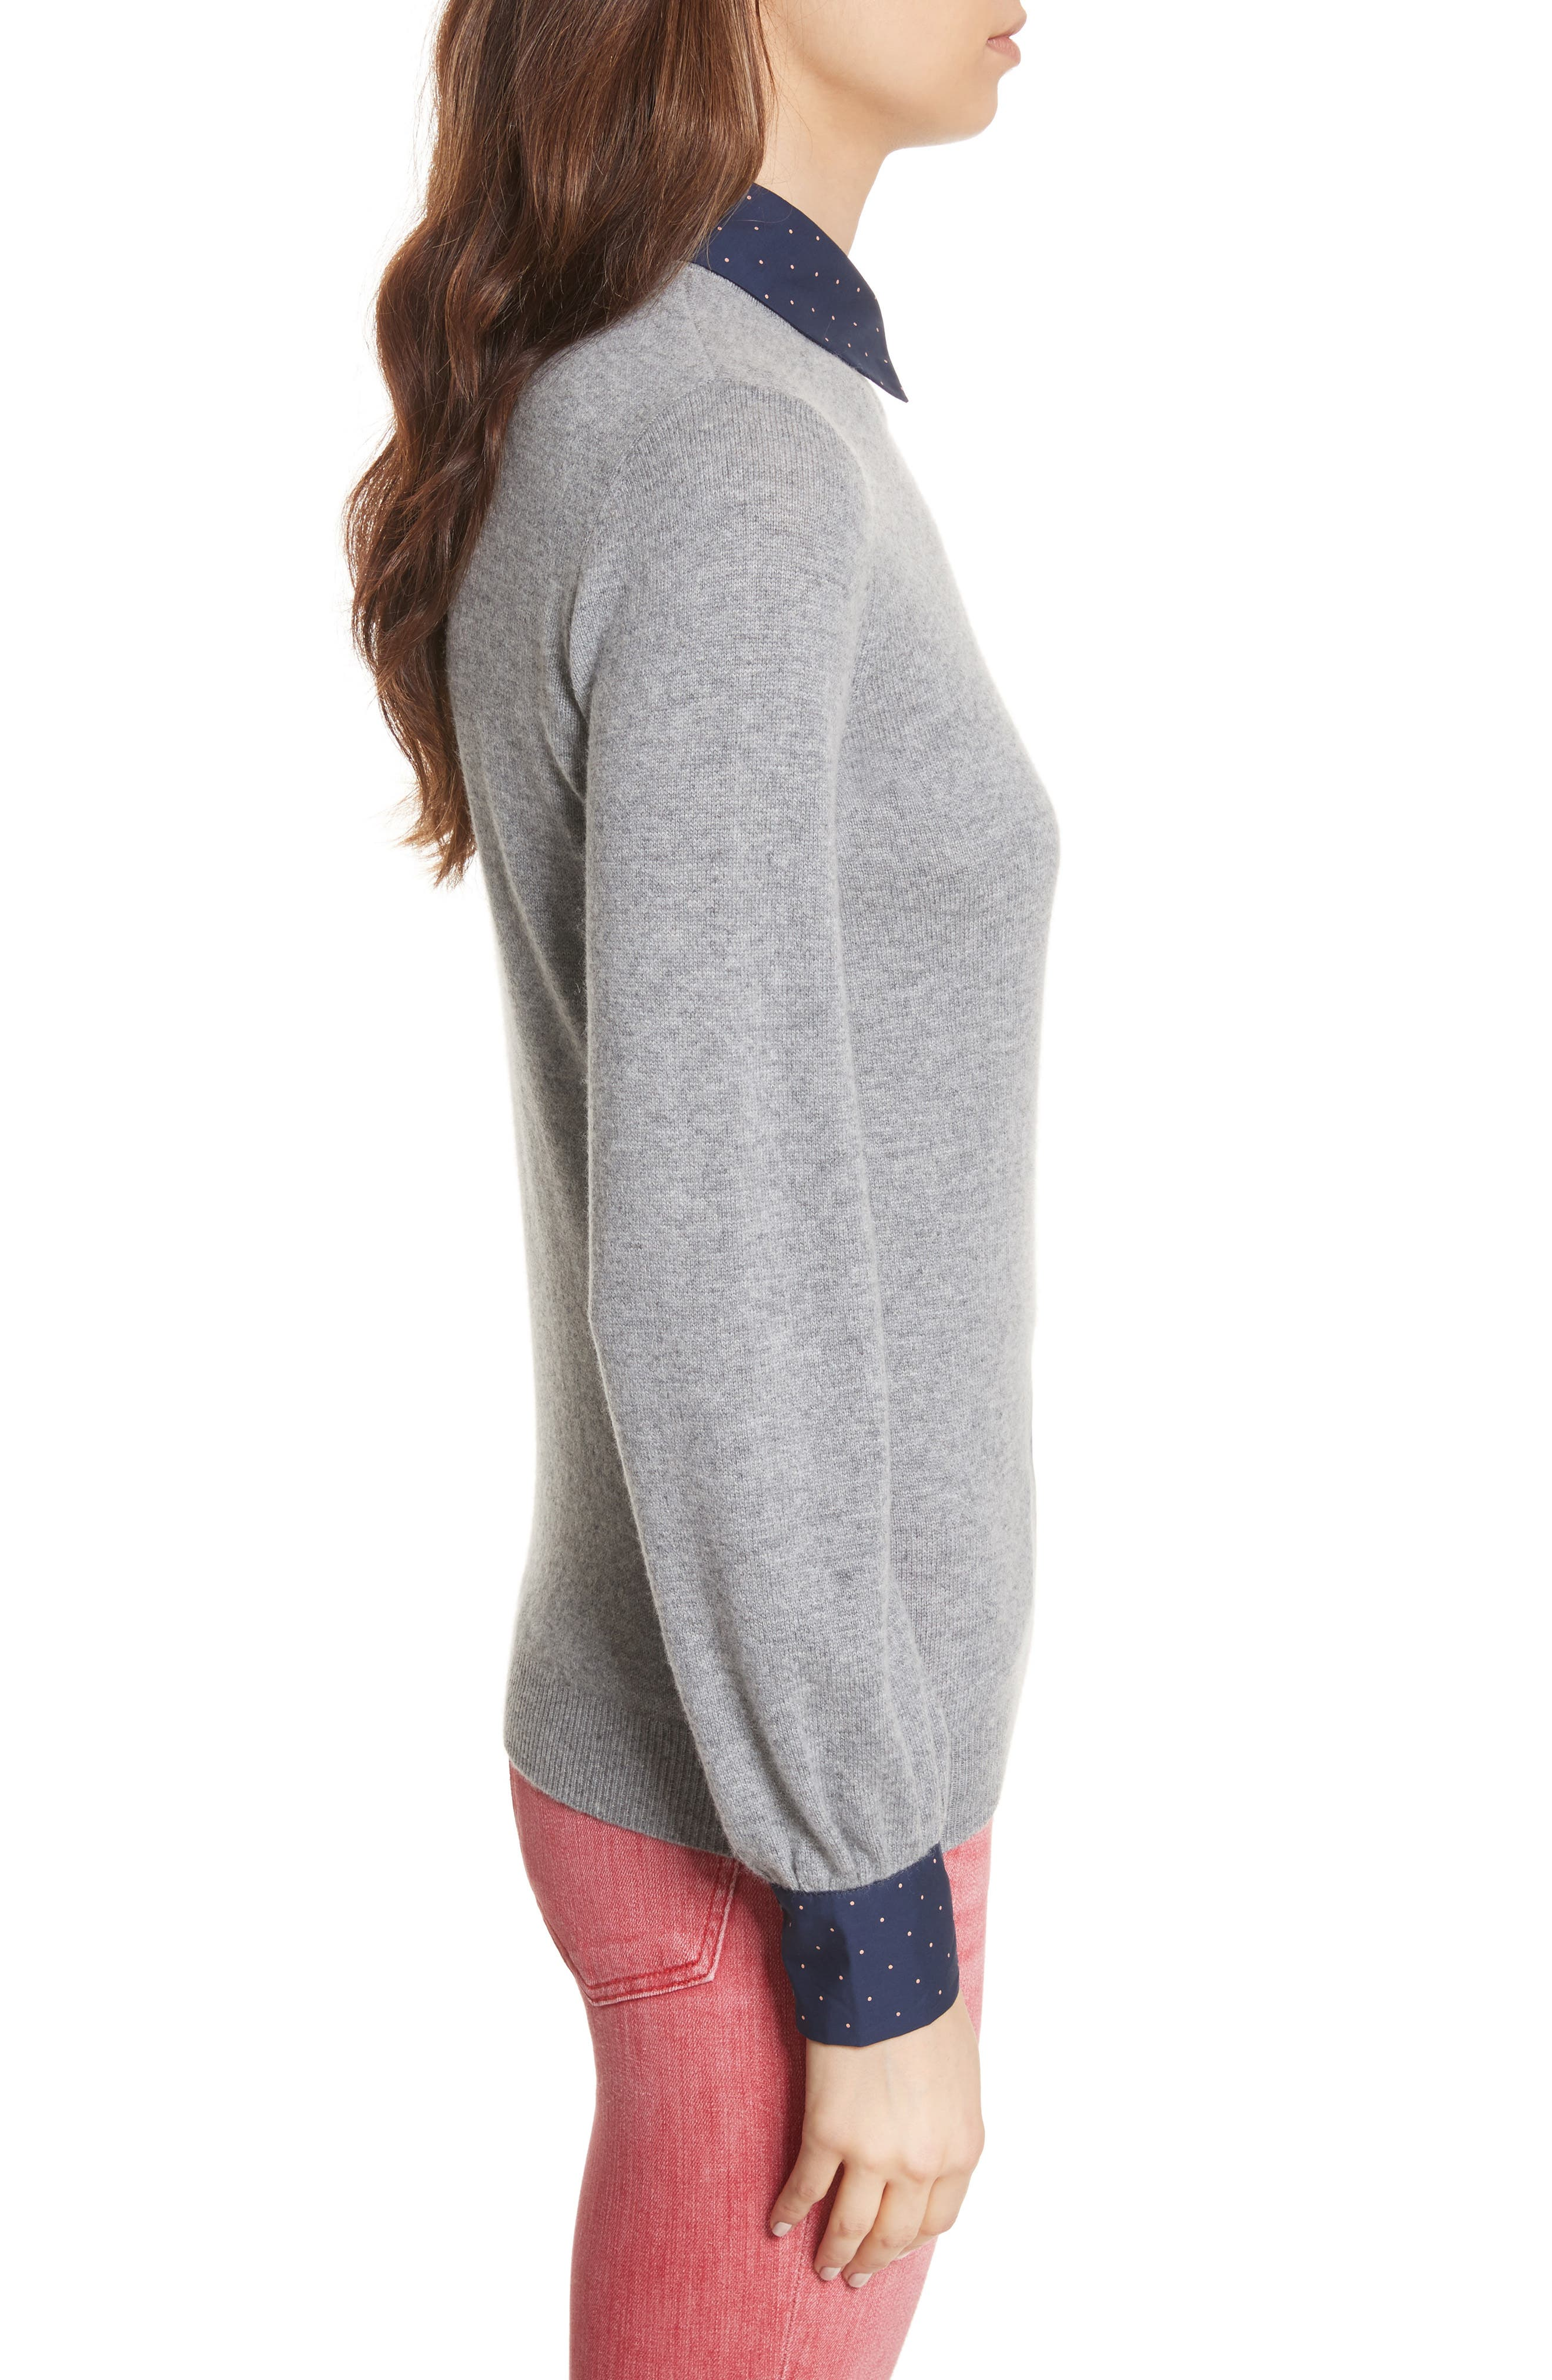 Bahiti Woven Trim Wool & Cashmere Sweater,                             Alternate thumbnail 3, color,                             Heather Grey/ Dark Navy